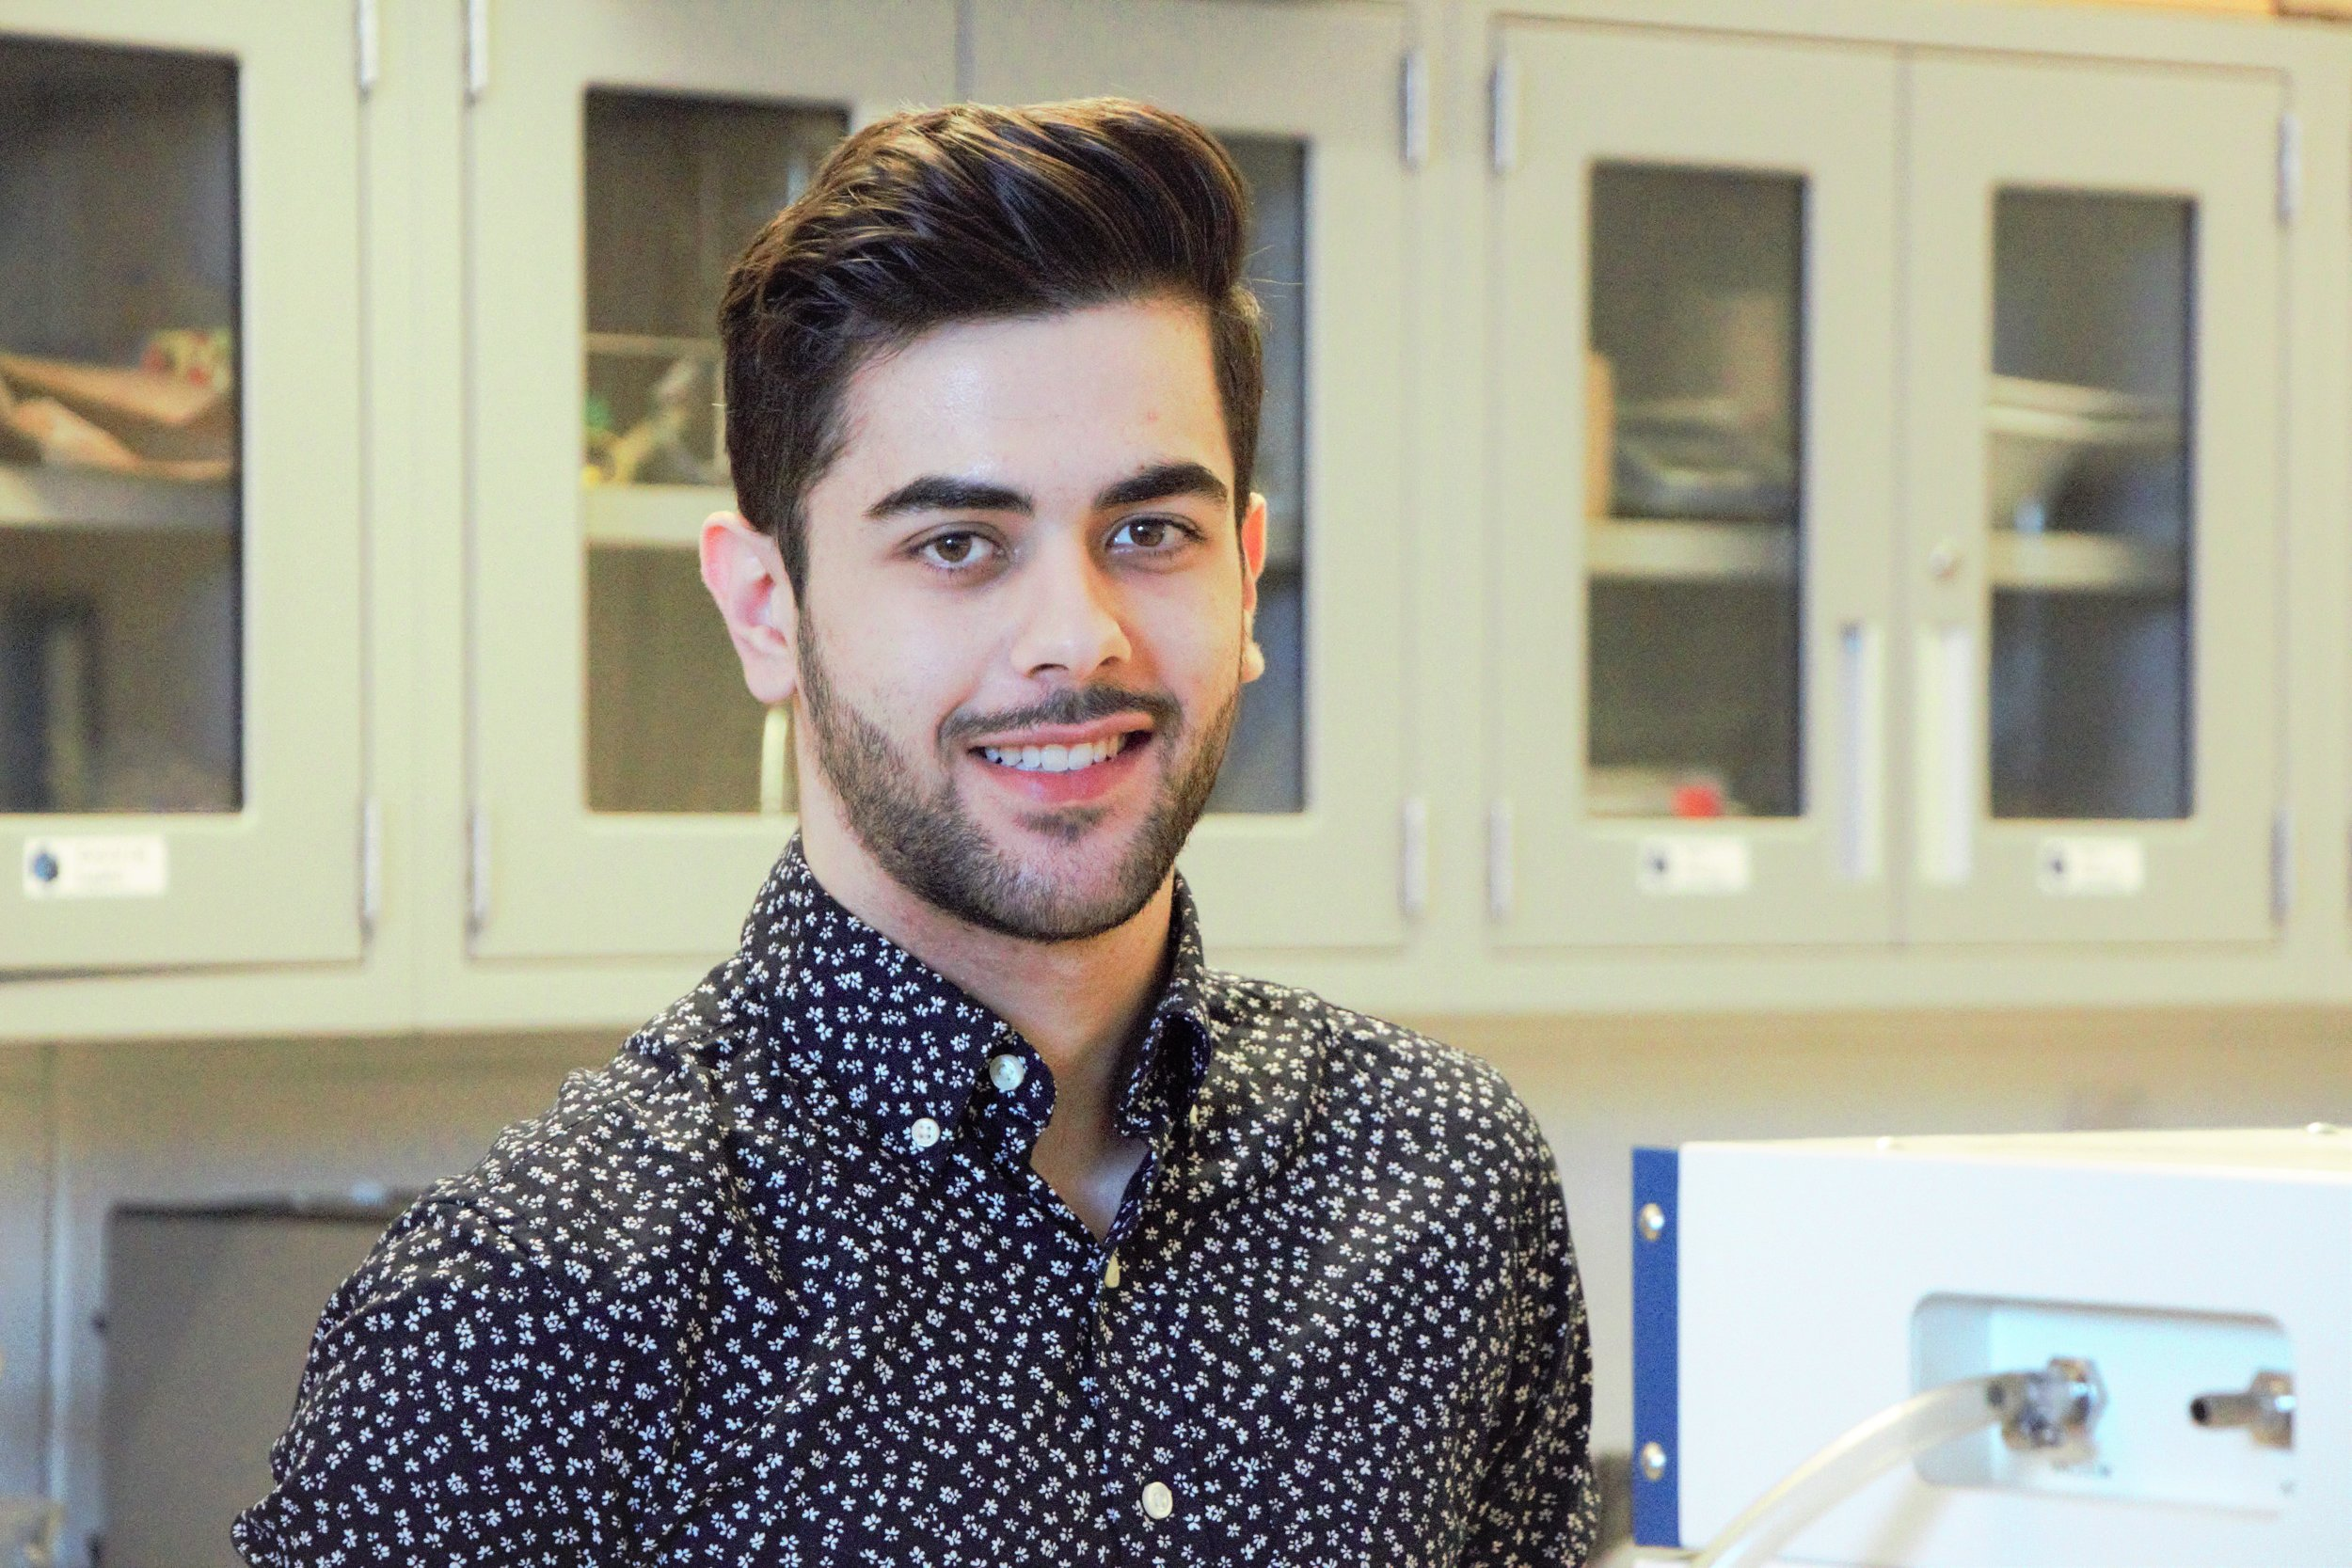 MATTEO TIMPANO - Dept. Of Mechanical EngineeringSupervisor: Sunny LeungAward: NSERC USRABio: Matteo Timpano is a fourth year student in the Department of Mechanical Engineering at York University. Having worked with Dr. Sunny Leung during the summer of 2018, Matteo has decided to return and finish his research in the design and fabrication of triboelectric nanogenerators (TENGs) for green energy generation. This summer, Matteo will be researching the effects of electrospinning to enhance the effect of triboelectrification in the polymer friction layers. He will be performing tests such as differential scanning calorimetry (DSC) and fourier-transform infrared spectroscopy (FTIR) on the electrospun samples to analyze the degree of crystallinity as well as the electroactive phase content within the polymer matrices. Furthermore, Matteo will be simulating real world applications such as harvesting energy from wind, rain, and mechanical motion as well as demonstrating the capability of TENGs for being used as self-powered sensors.